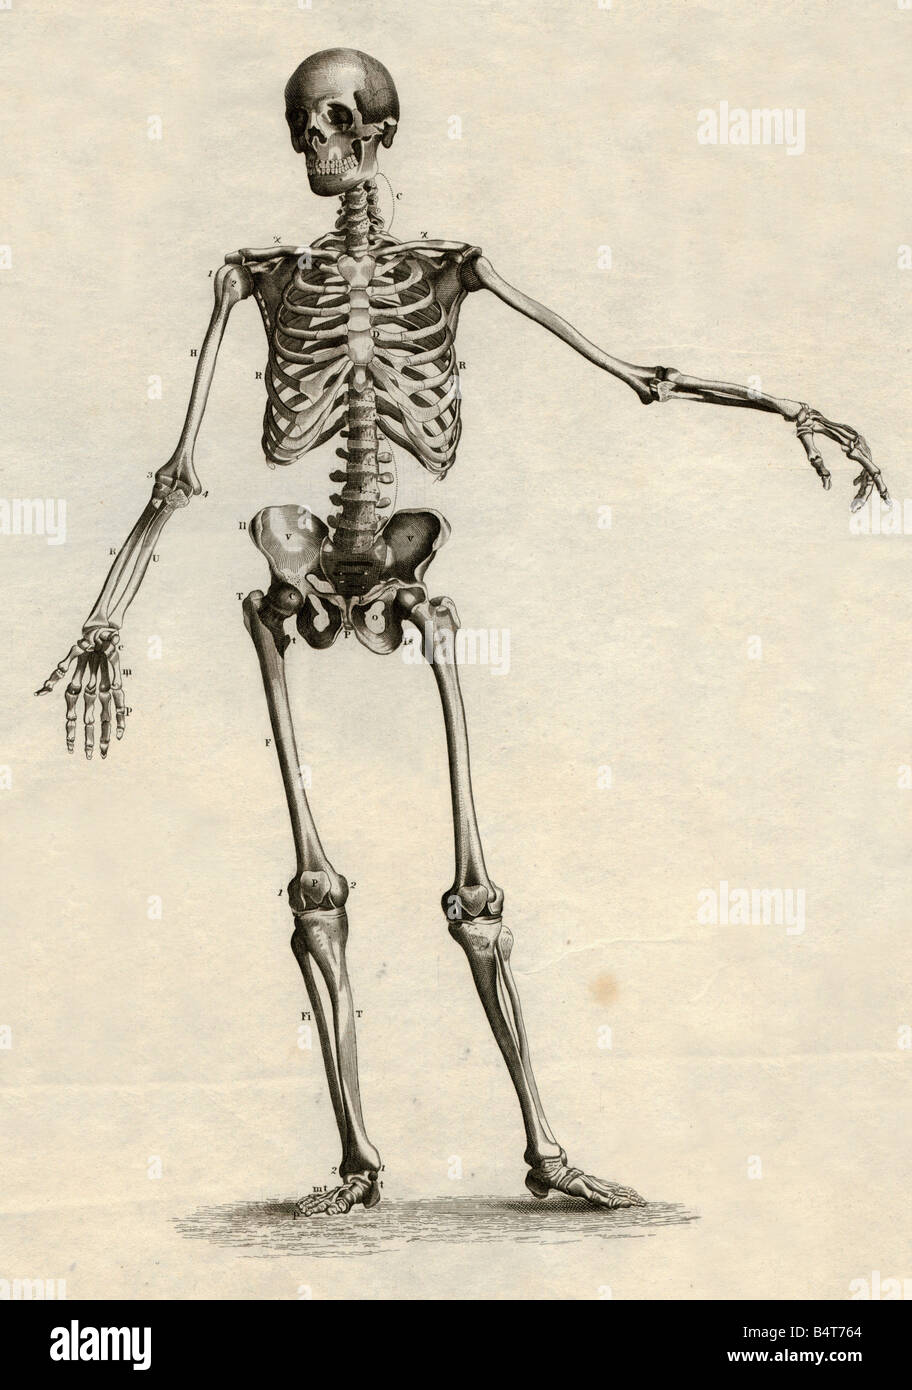 medicine, anatomy, skeleton / bones, skeleton, steel engraving, Schweinfurt, Germany, second half of the 19th century, - Stock Image